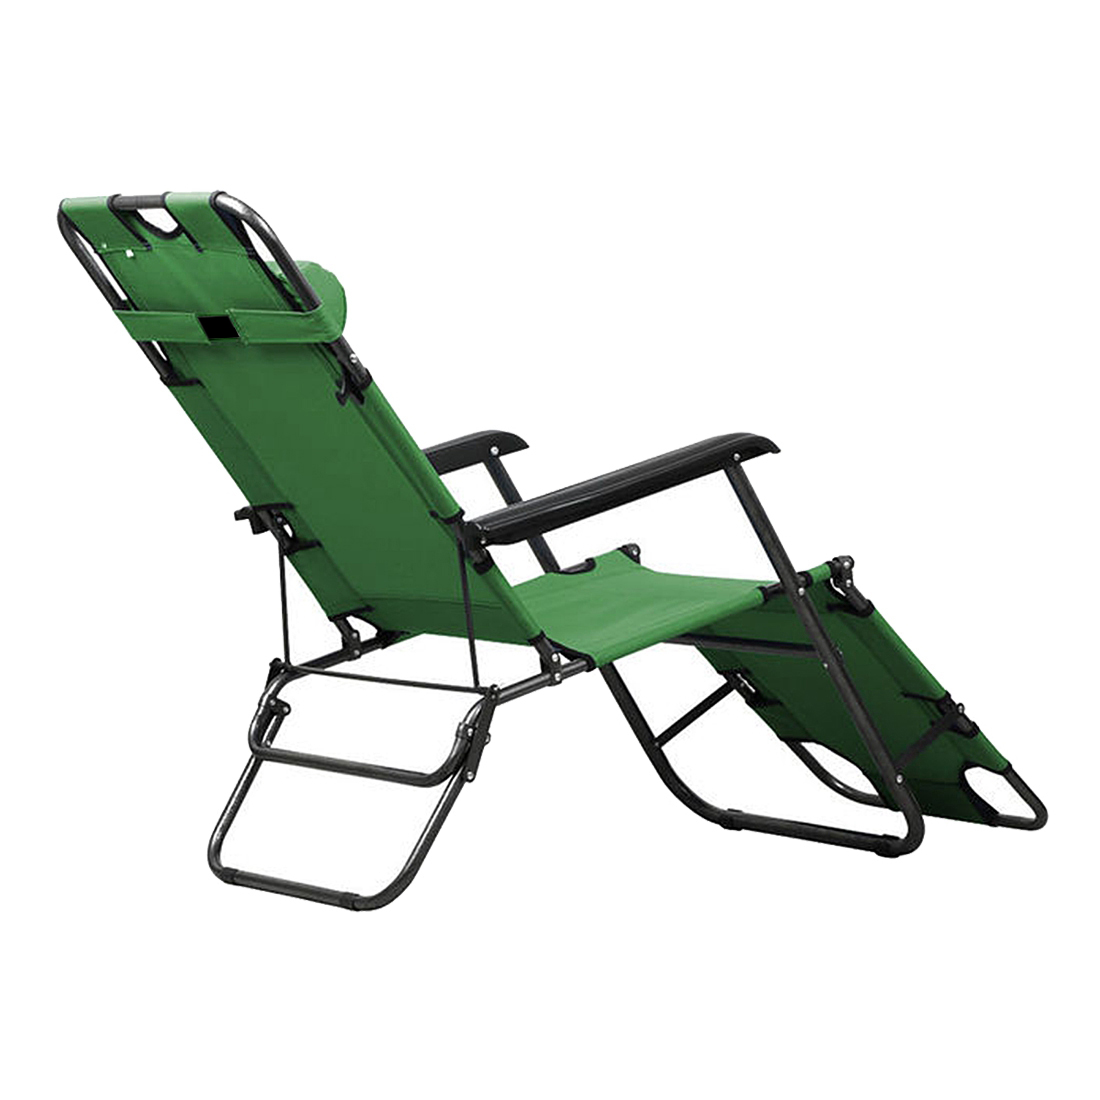 recliner lawn chairs folding table and chair set metal chaise lounge patio outdoor pool beach